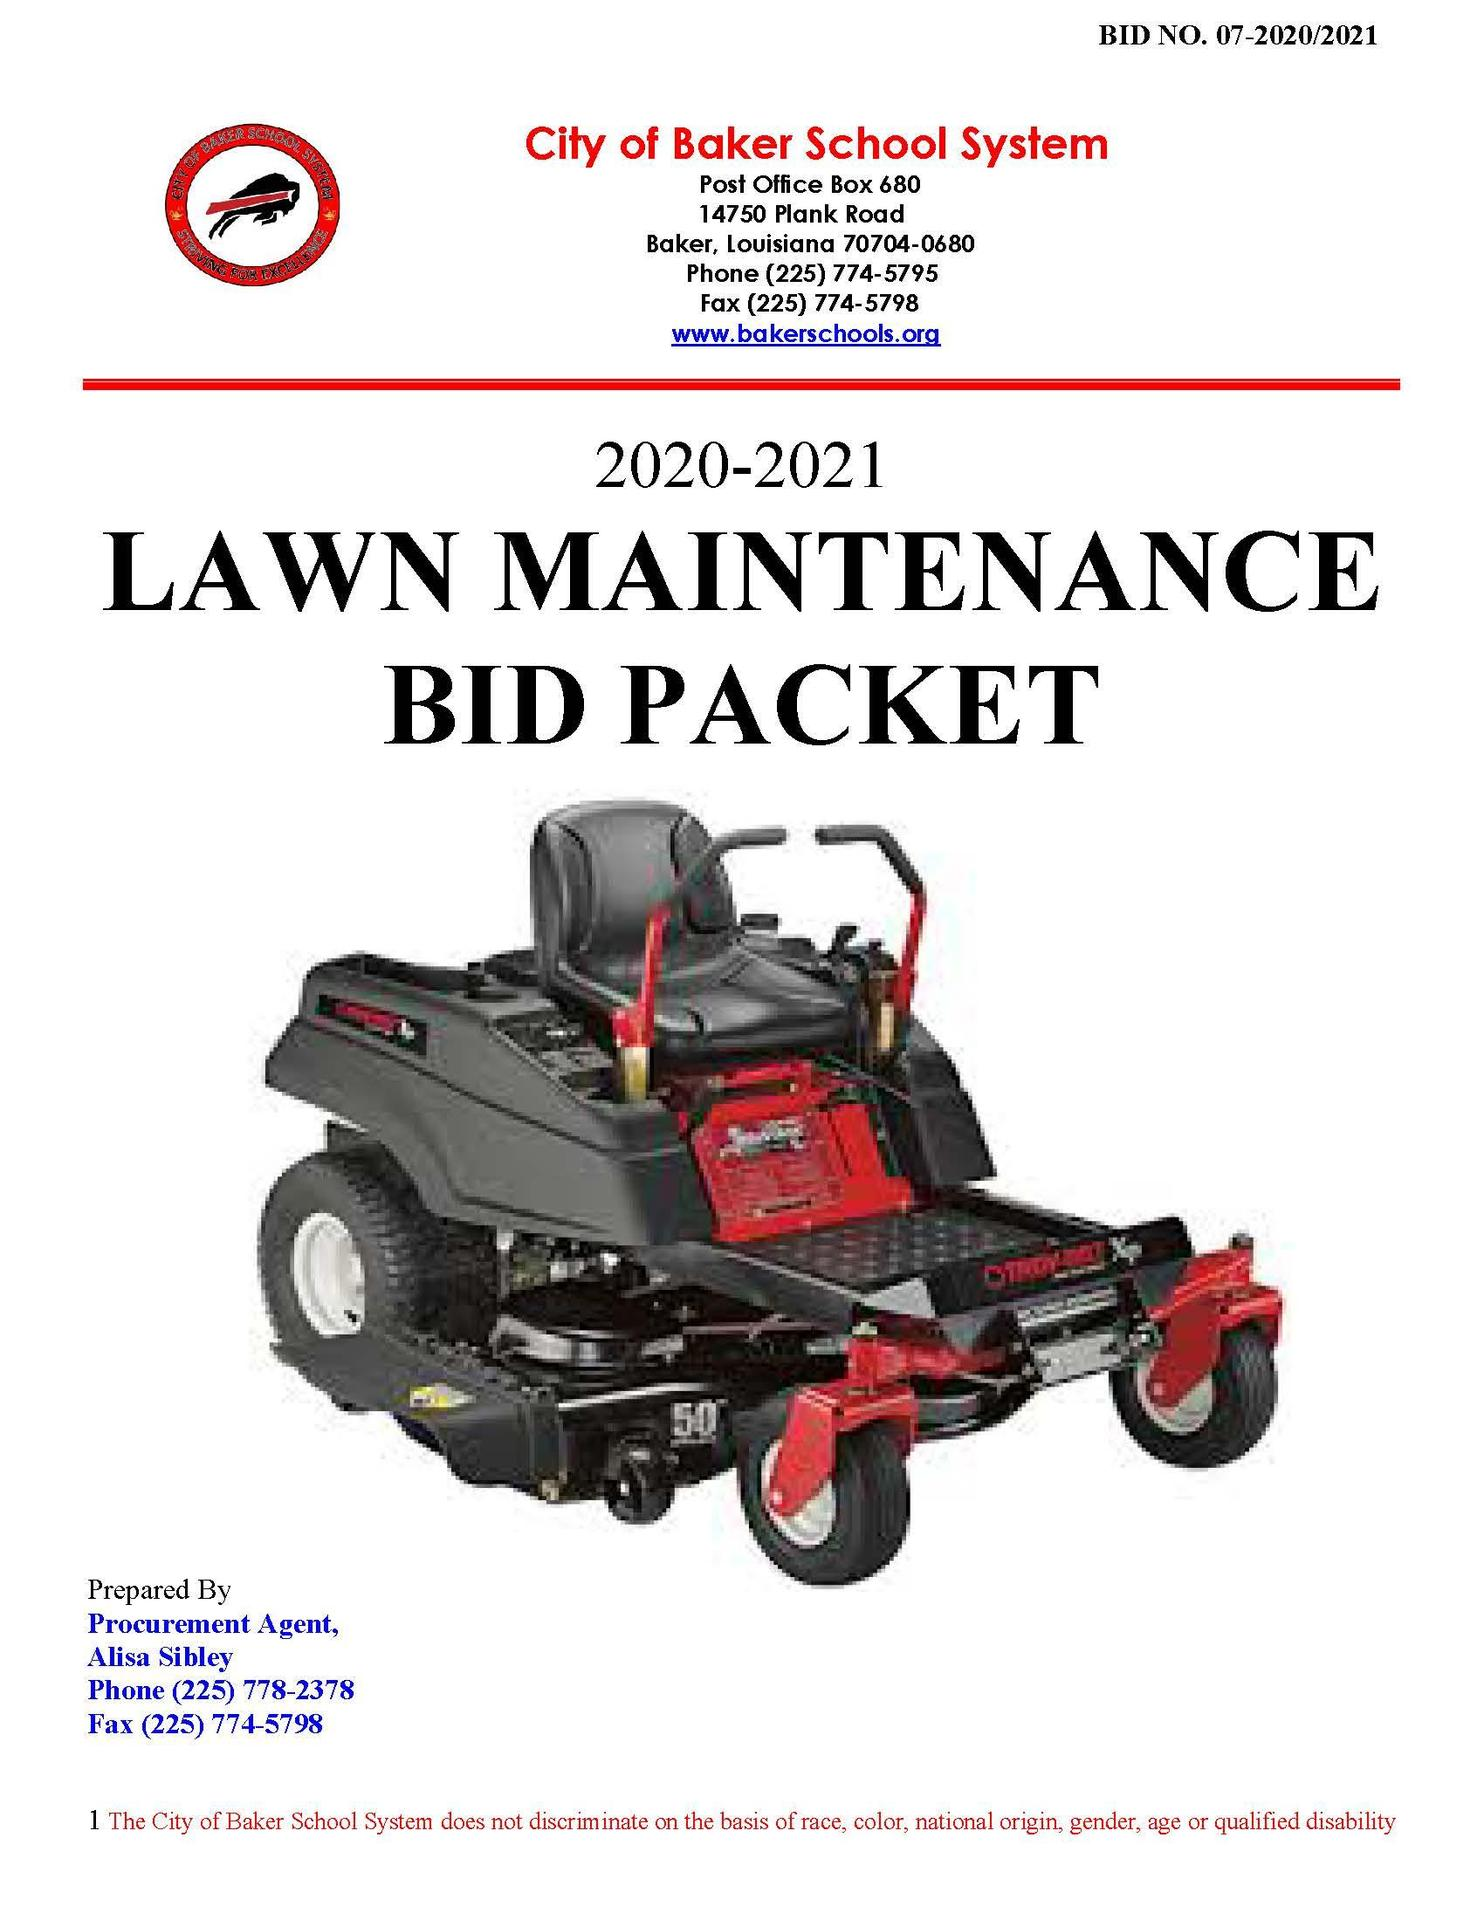 photo of cover sheet to the 2020-2021 Lawn Maintenance Bid Packet